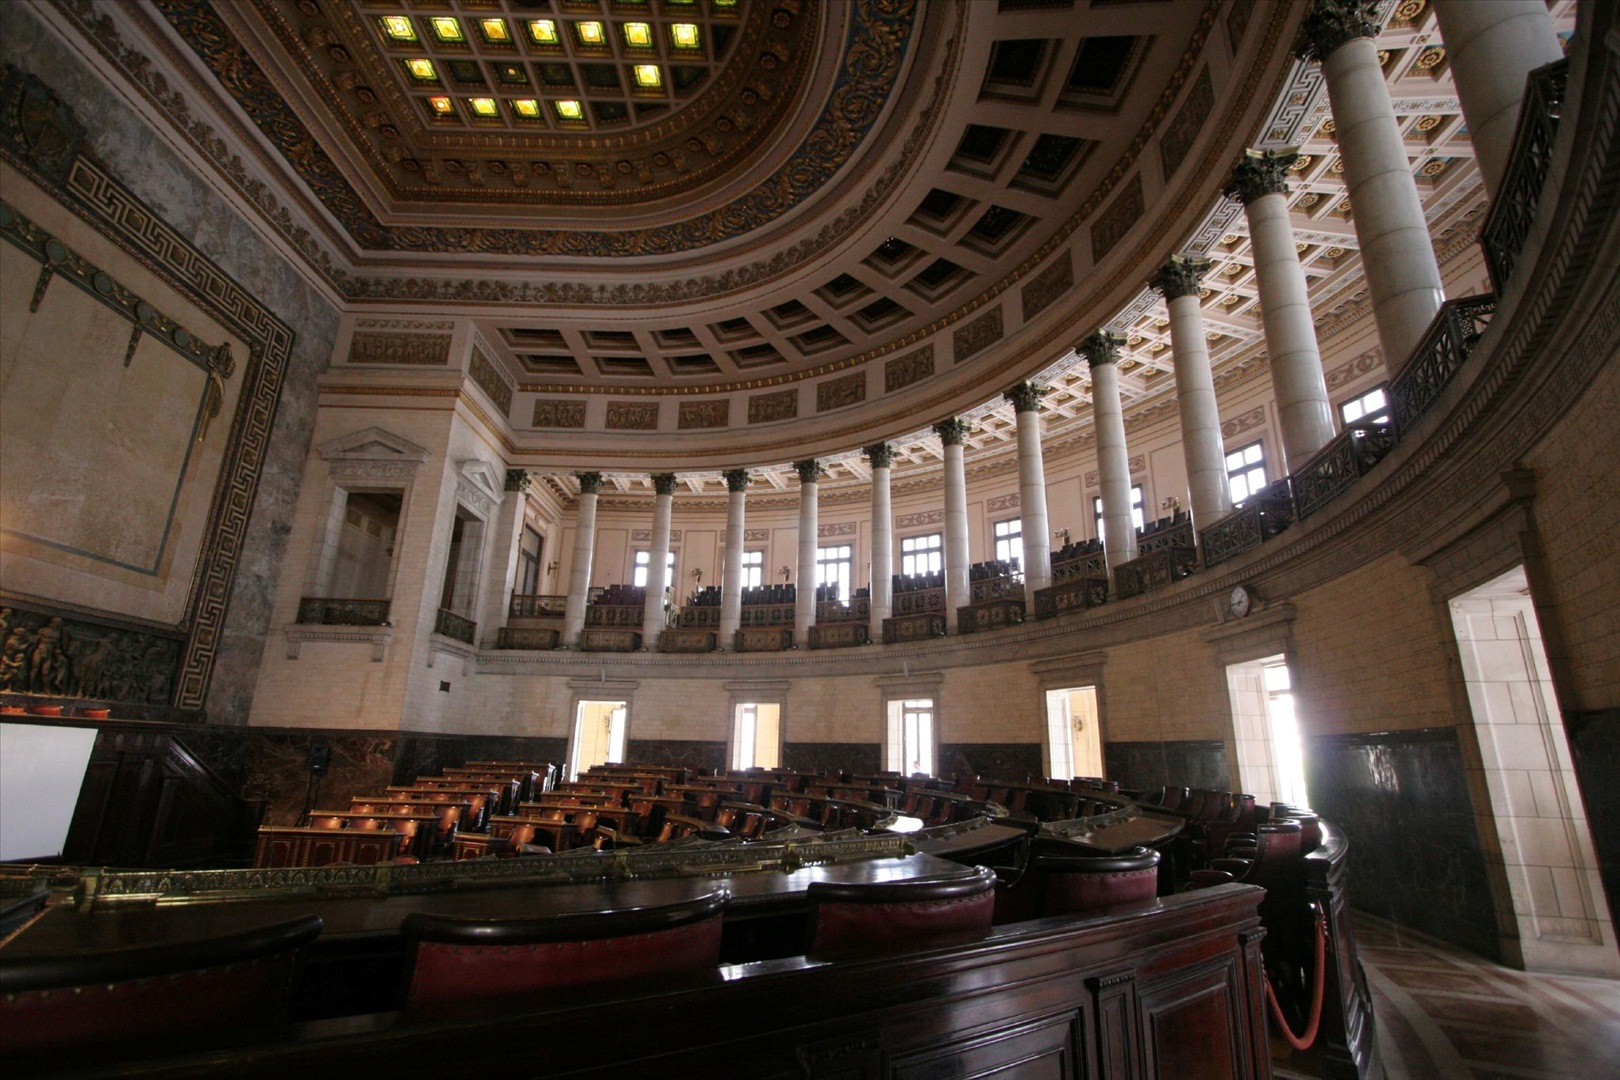 The_Senate_EL_Capitolio_Havana